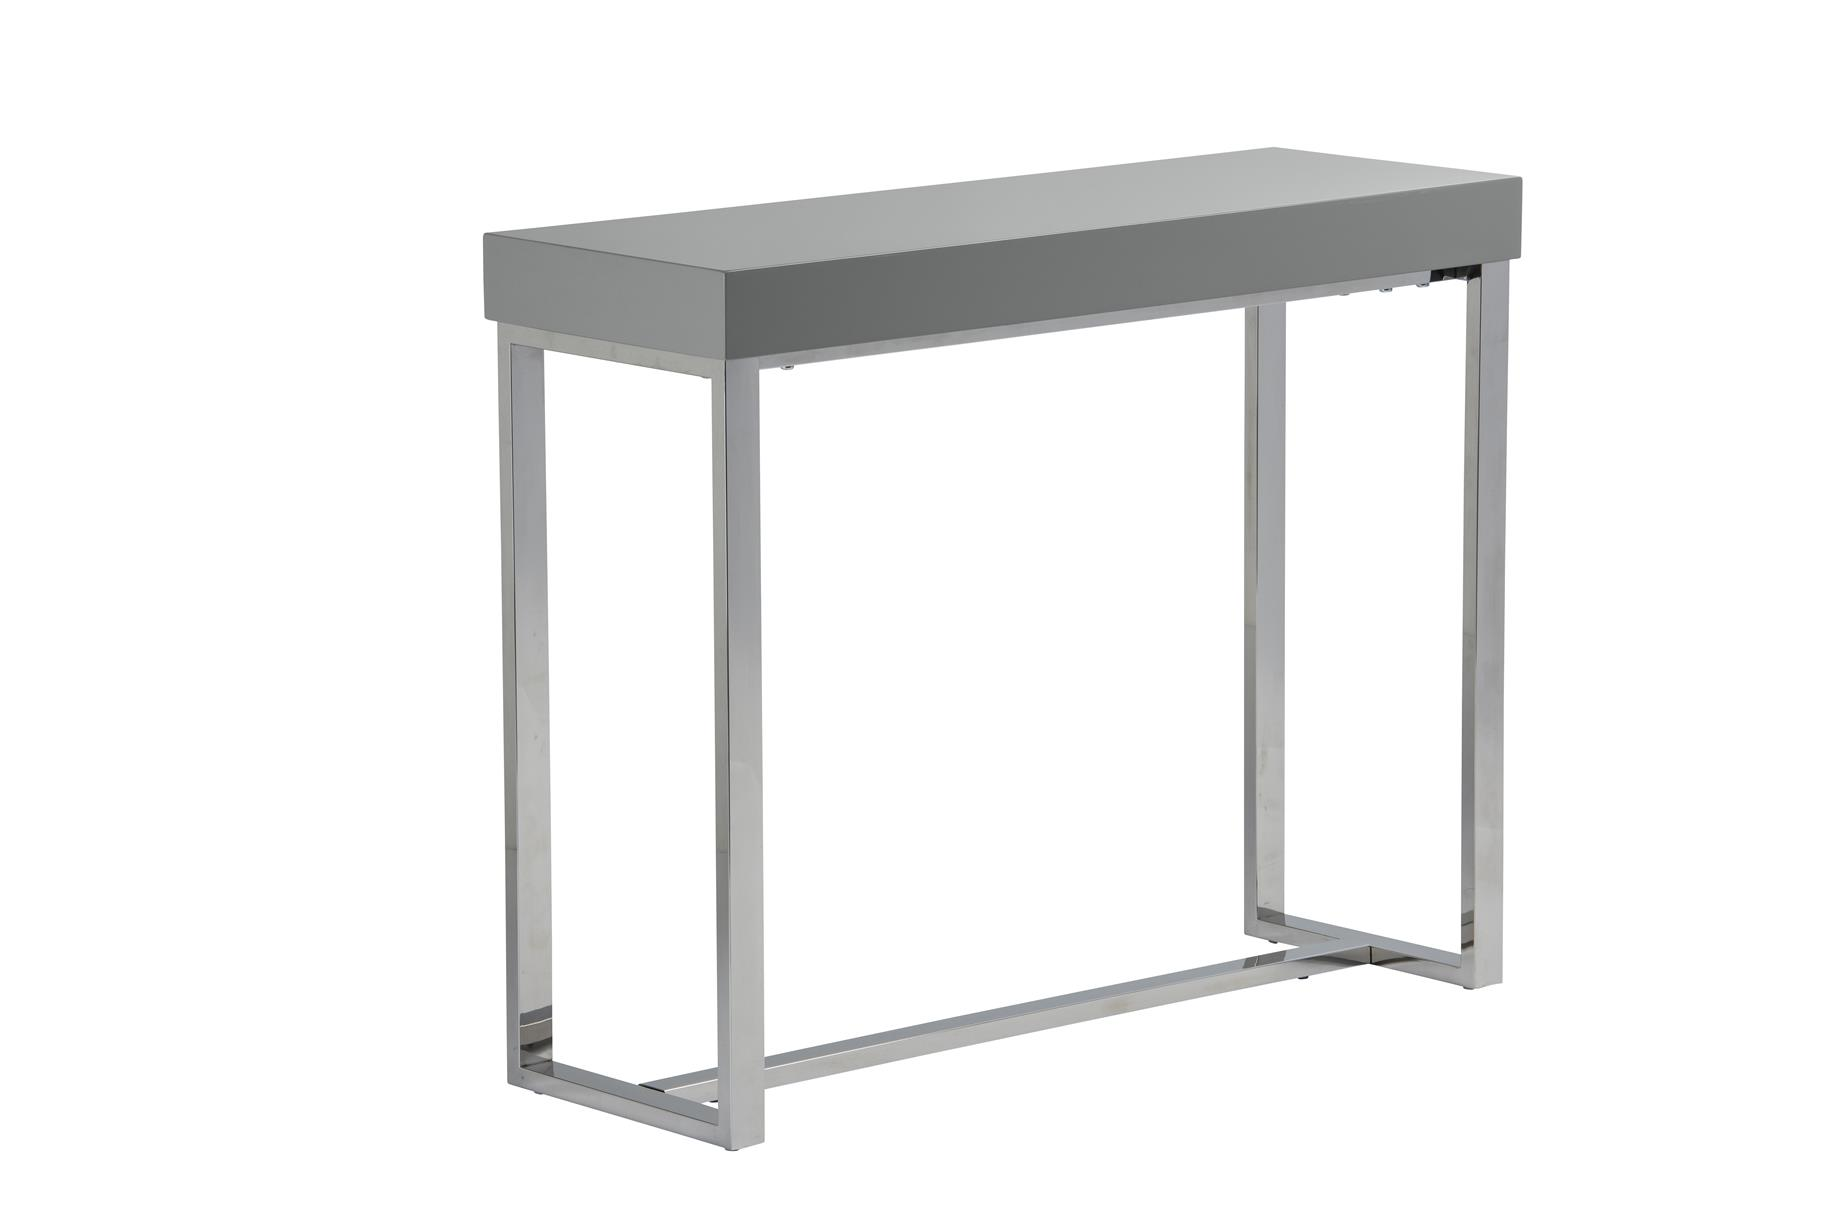 Remarkable Franklyn Console Table In Grey High Gloss Machost Co Dining Chair Design Ideas Machostcouk